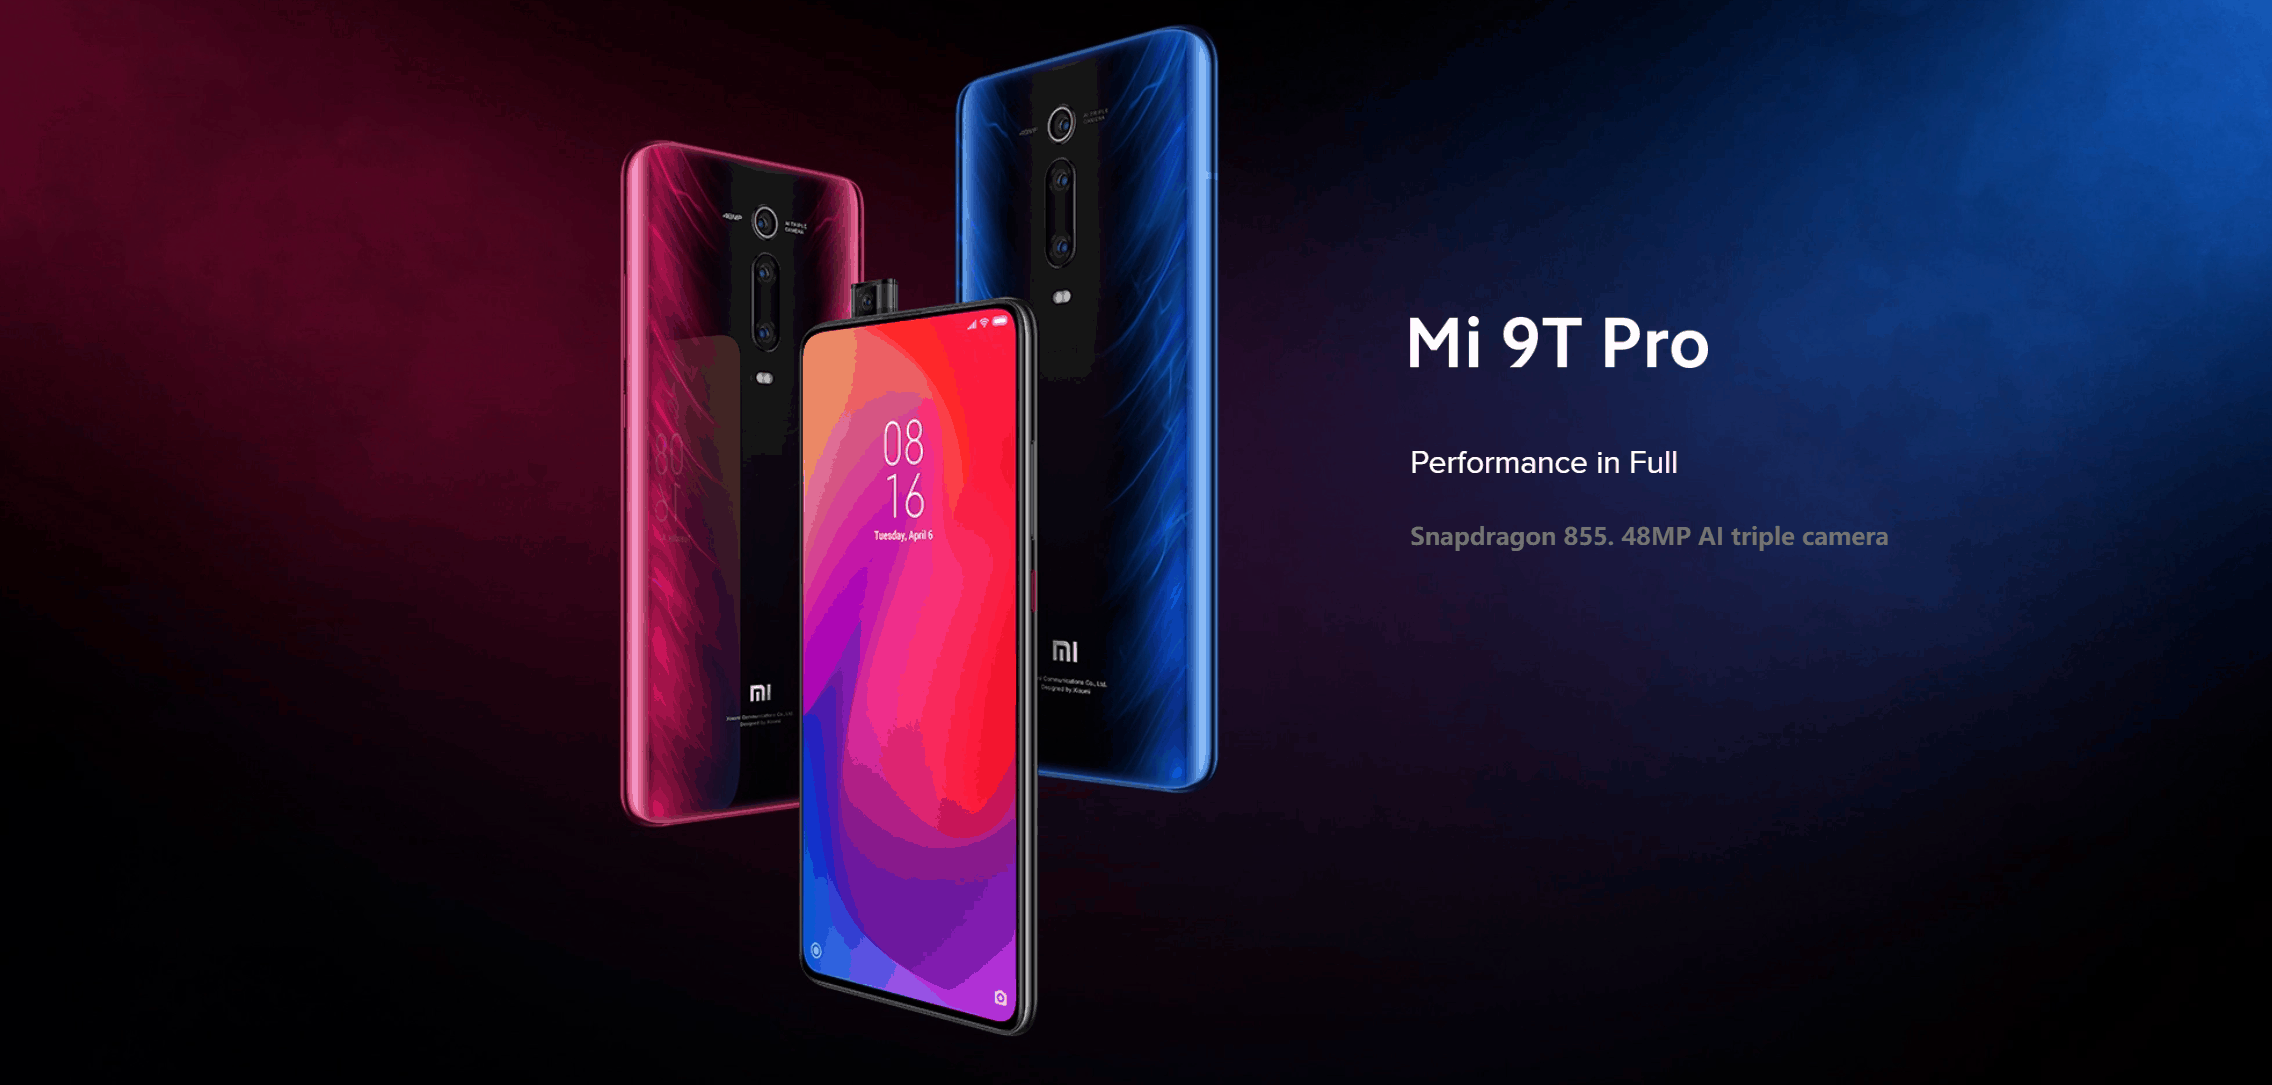 Photo of Xiaomi Mi 9T Pro is officially launching. Pre-order for €399.00/£364 from Amazon.es